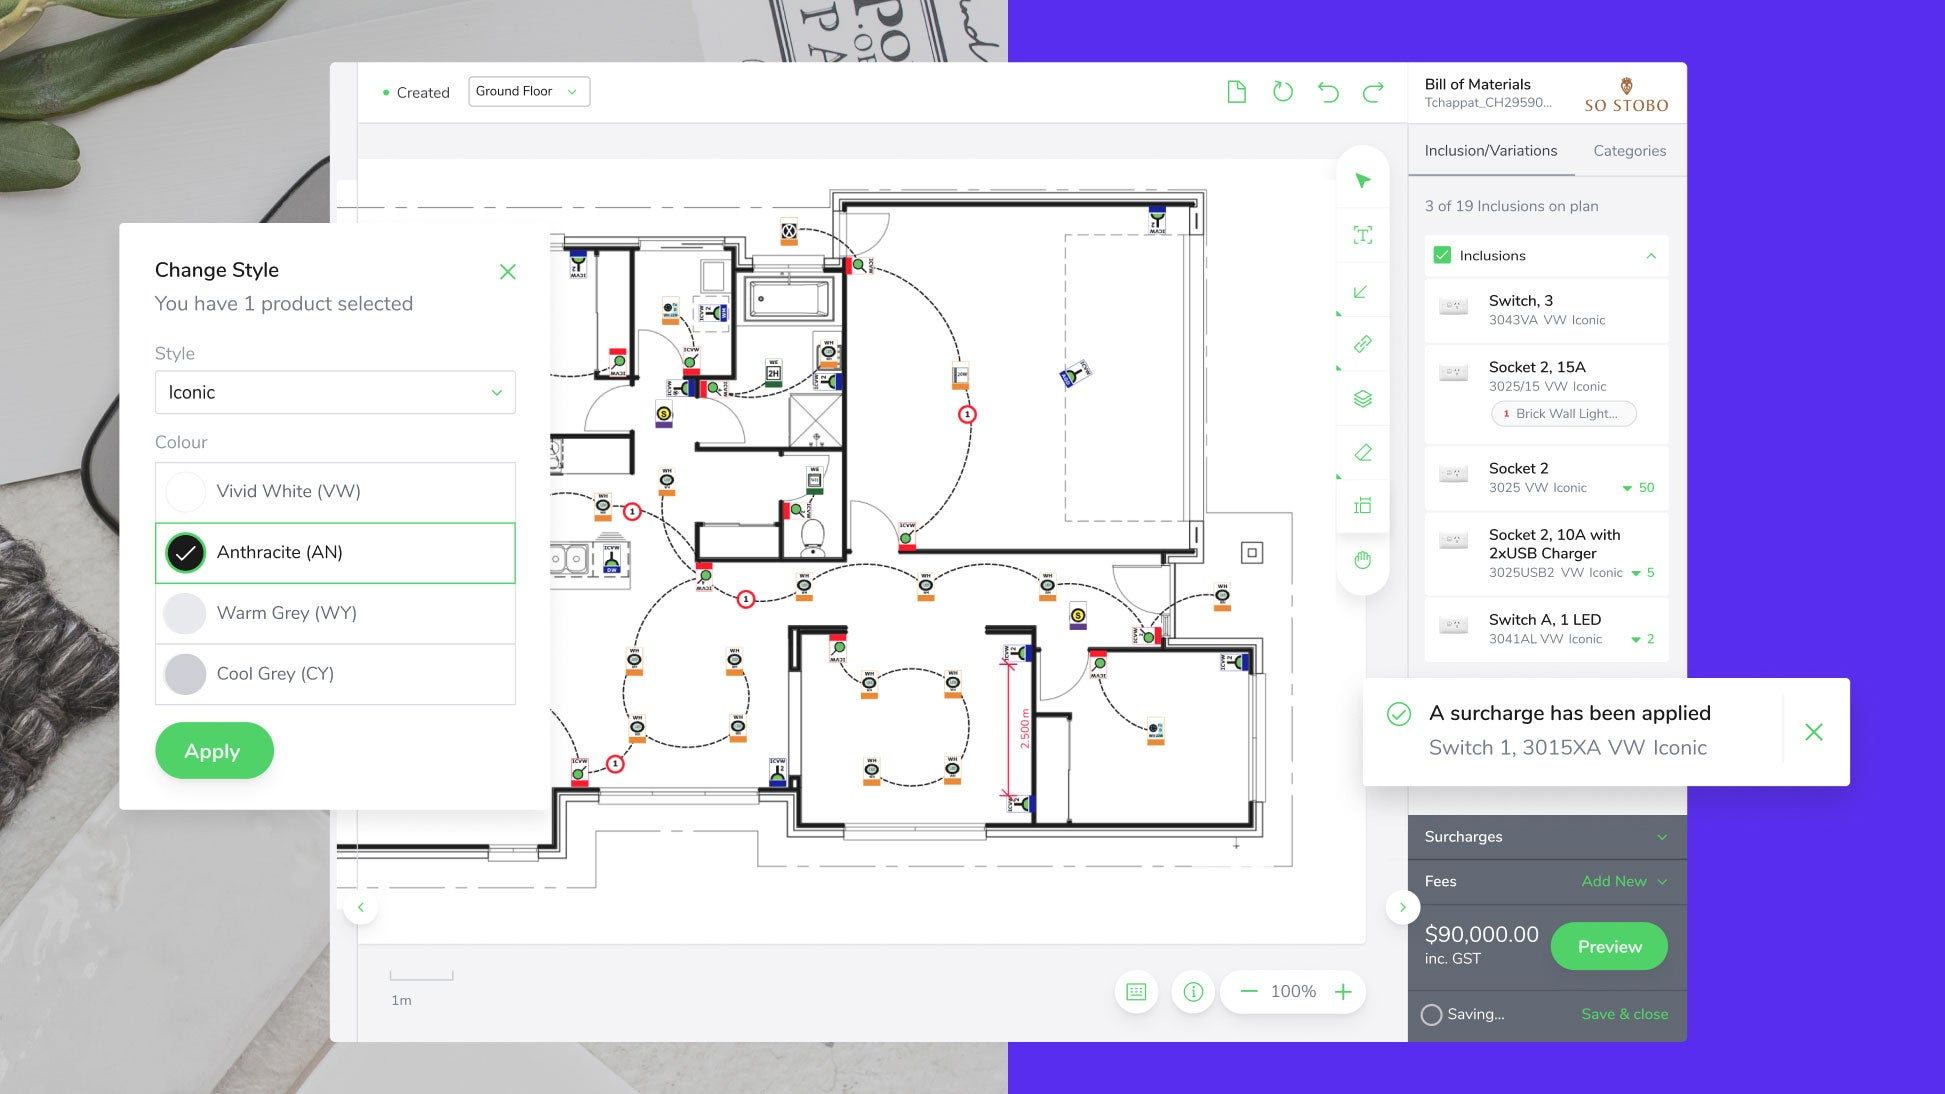 Clipsal Electrical Design Application case study hero image